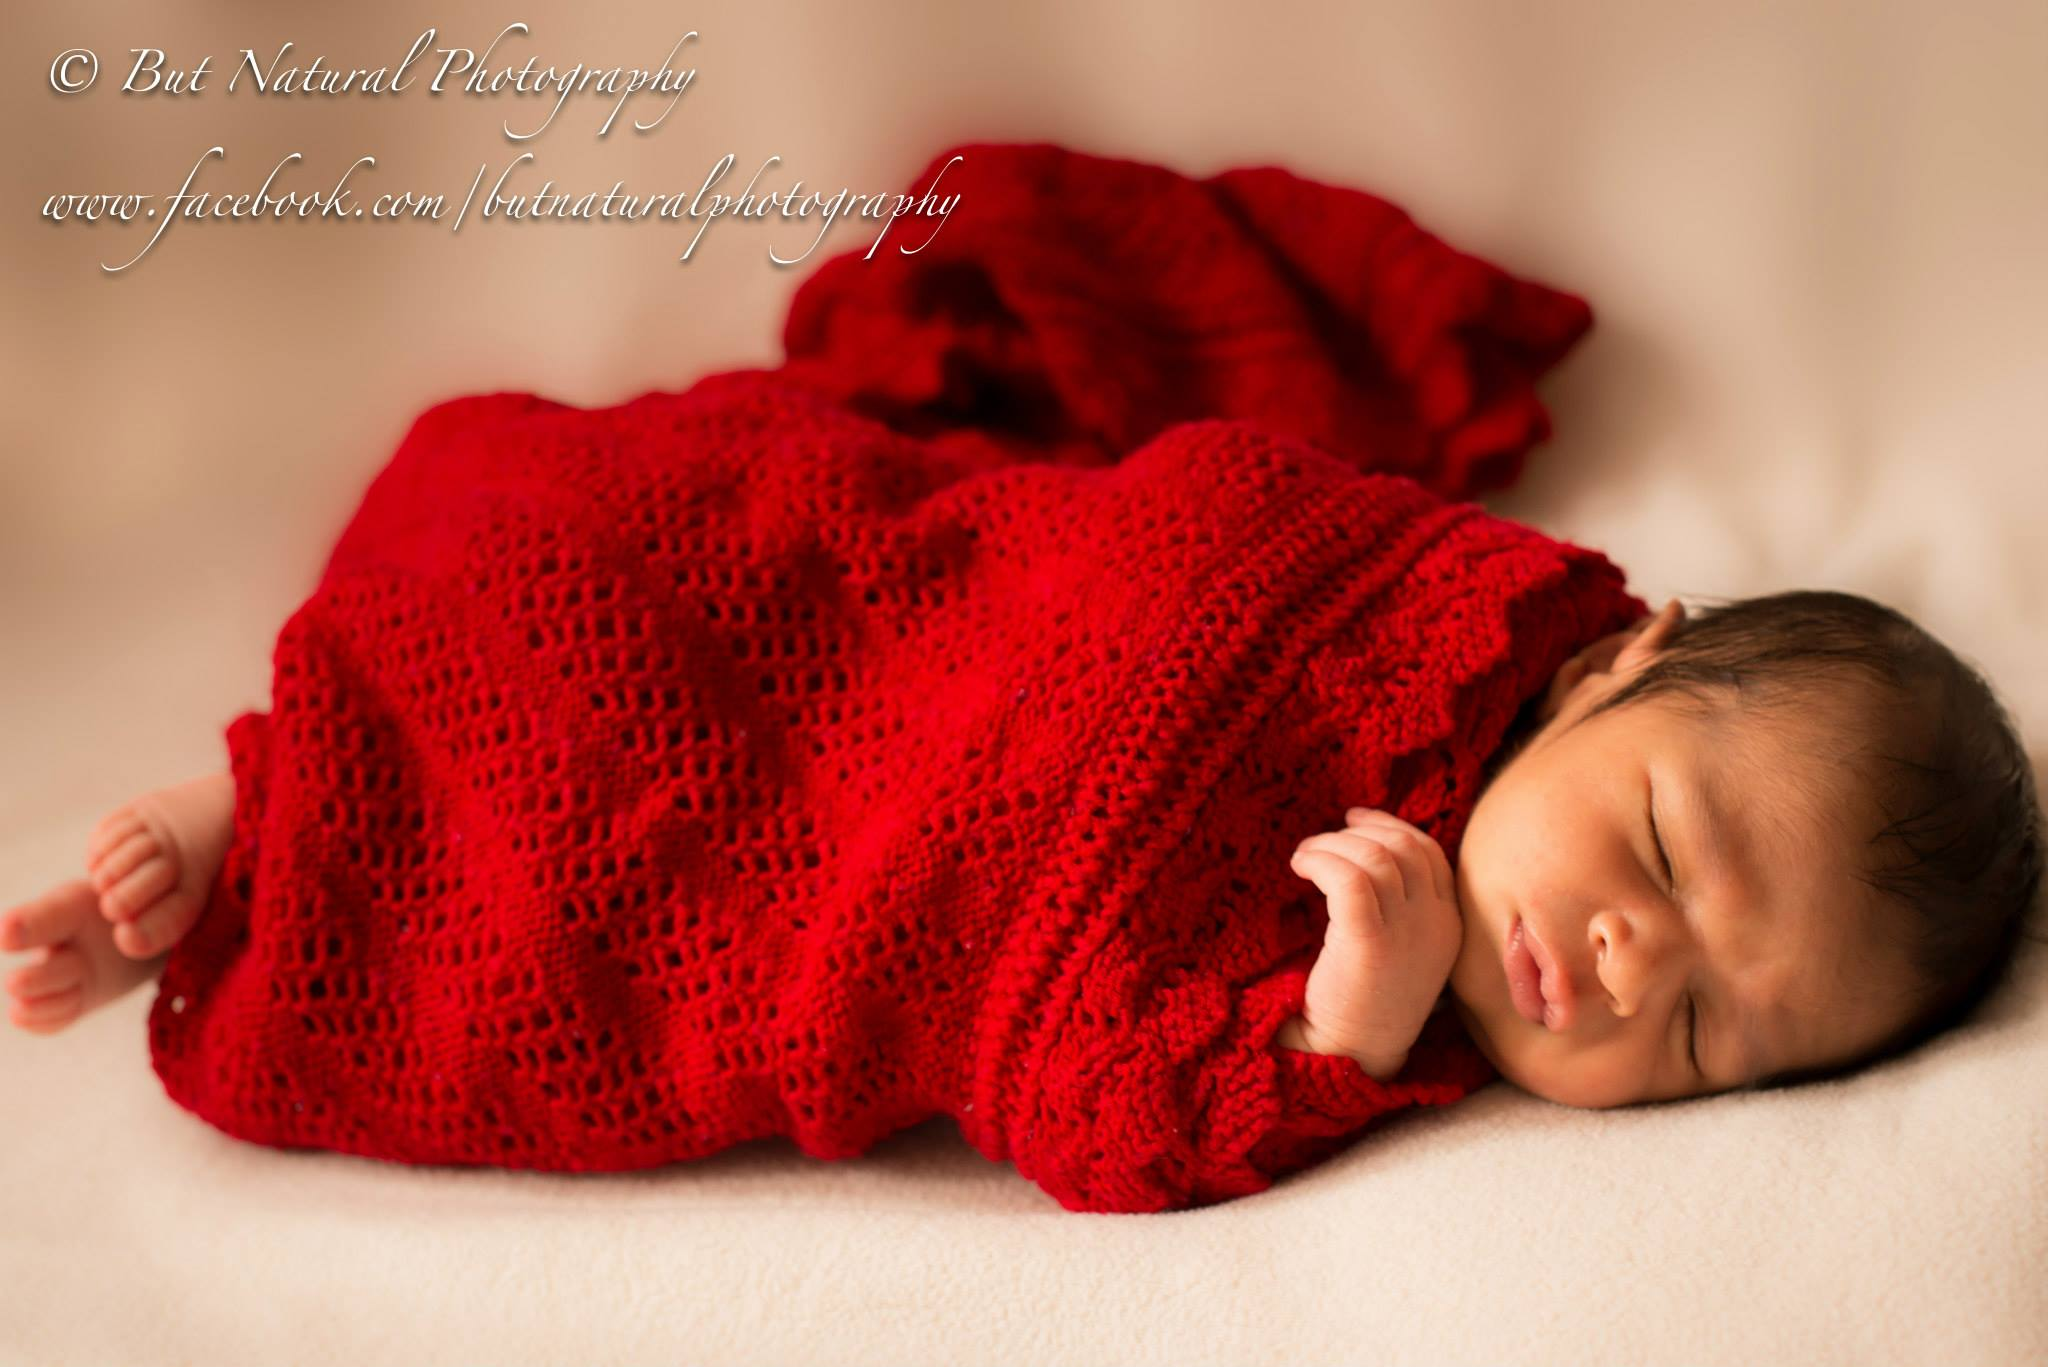 Newborn baby wrapped in a blanket for newborn baby photoshoot by Sujata Setia | But Natural Photography